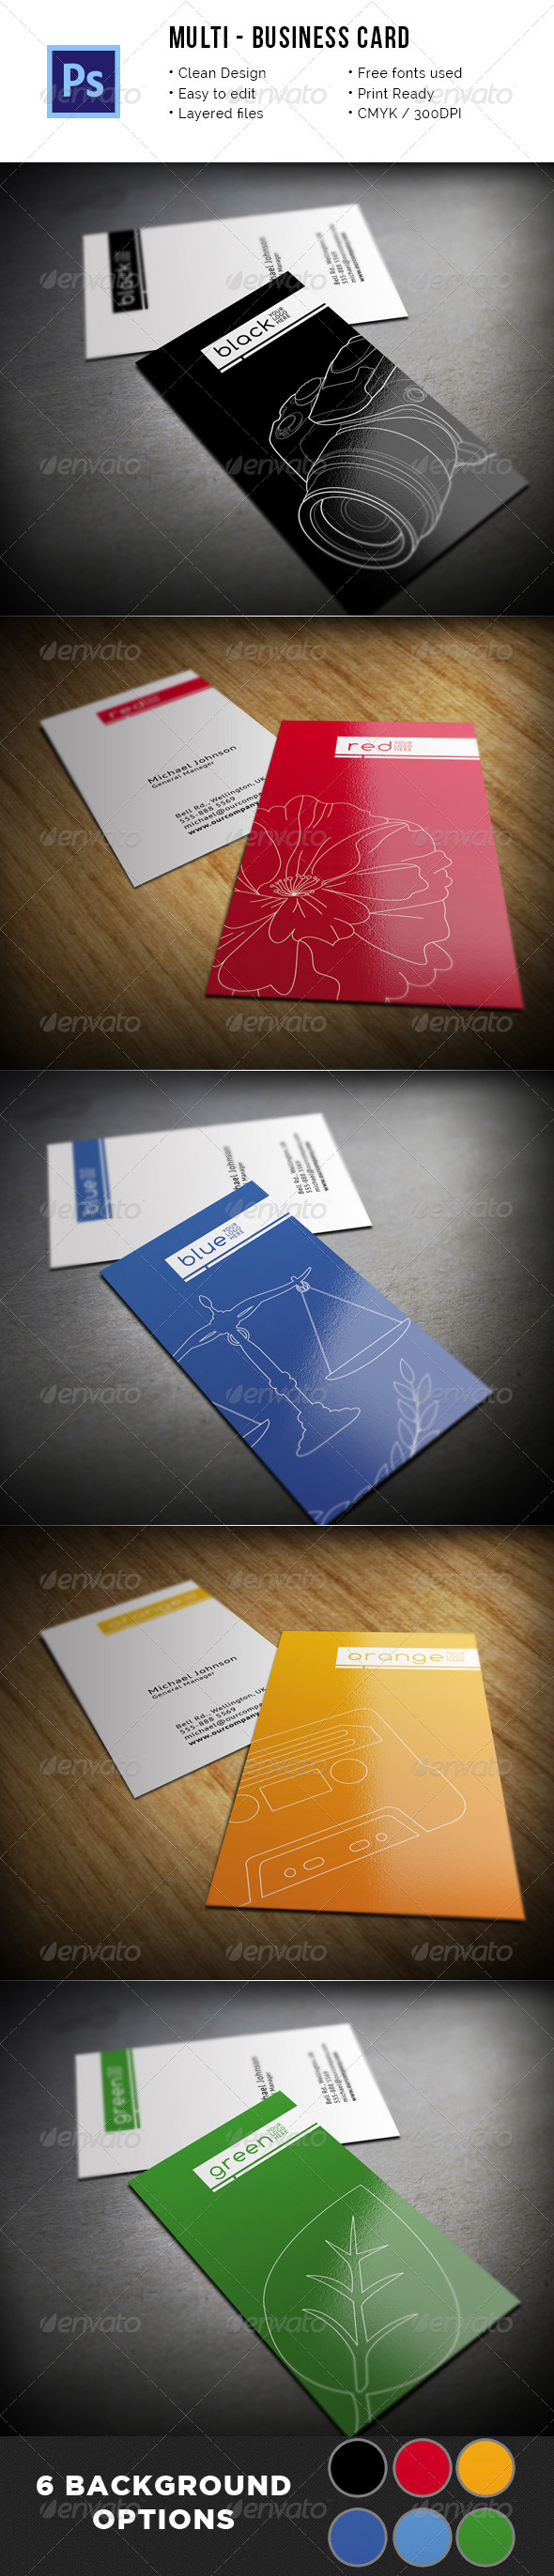 Multipurpose Clean Business Card - Creative Business Cards